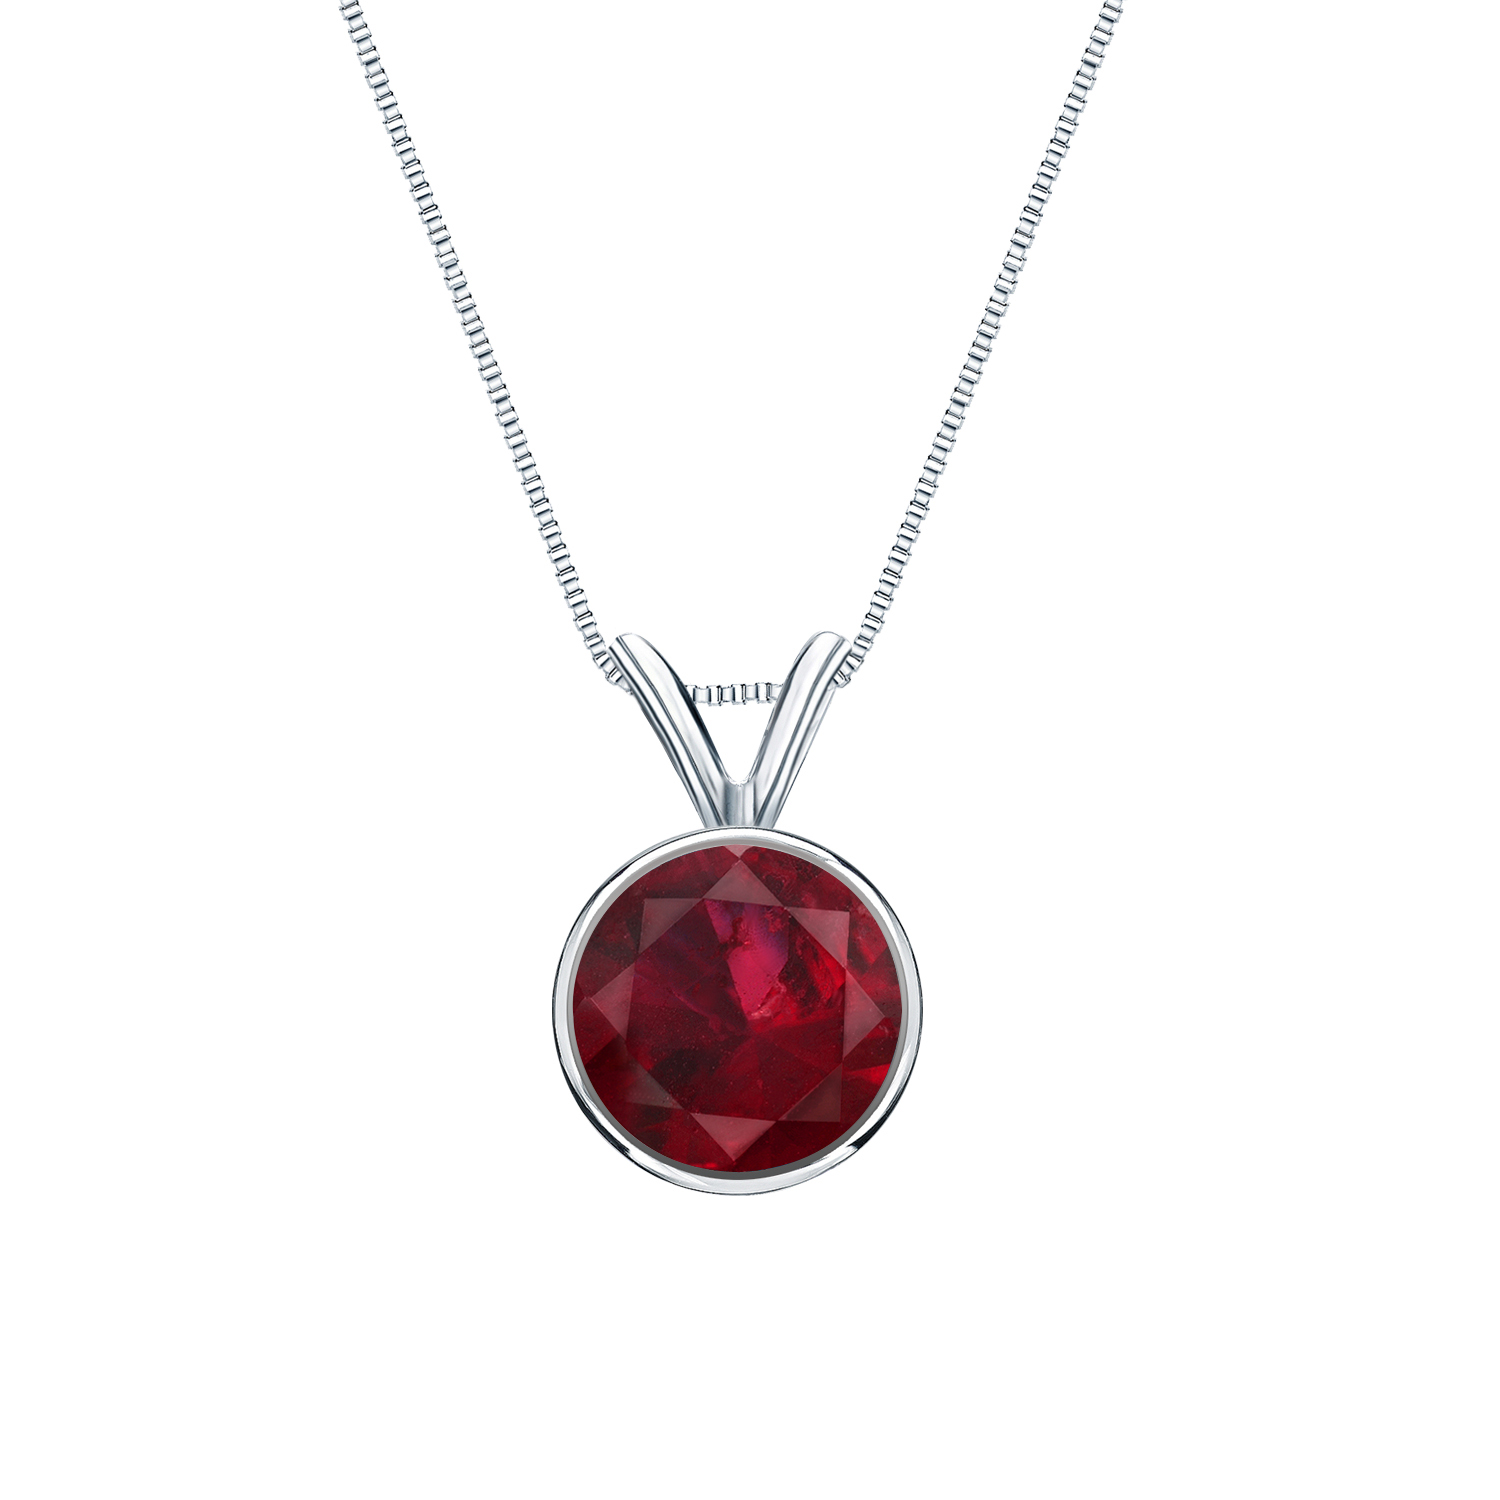 Certified 0.20 ct. tw. Round Ruby Gemstone Solitaire Pendant in 14k White Gold Bezel (Red, AAA)